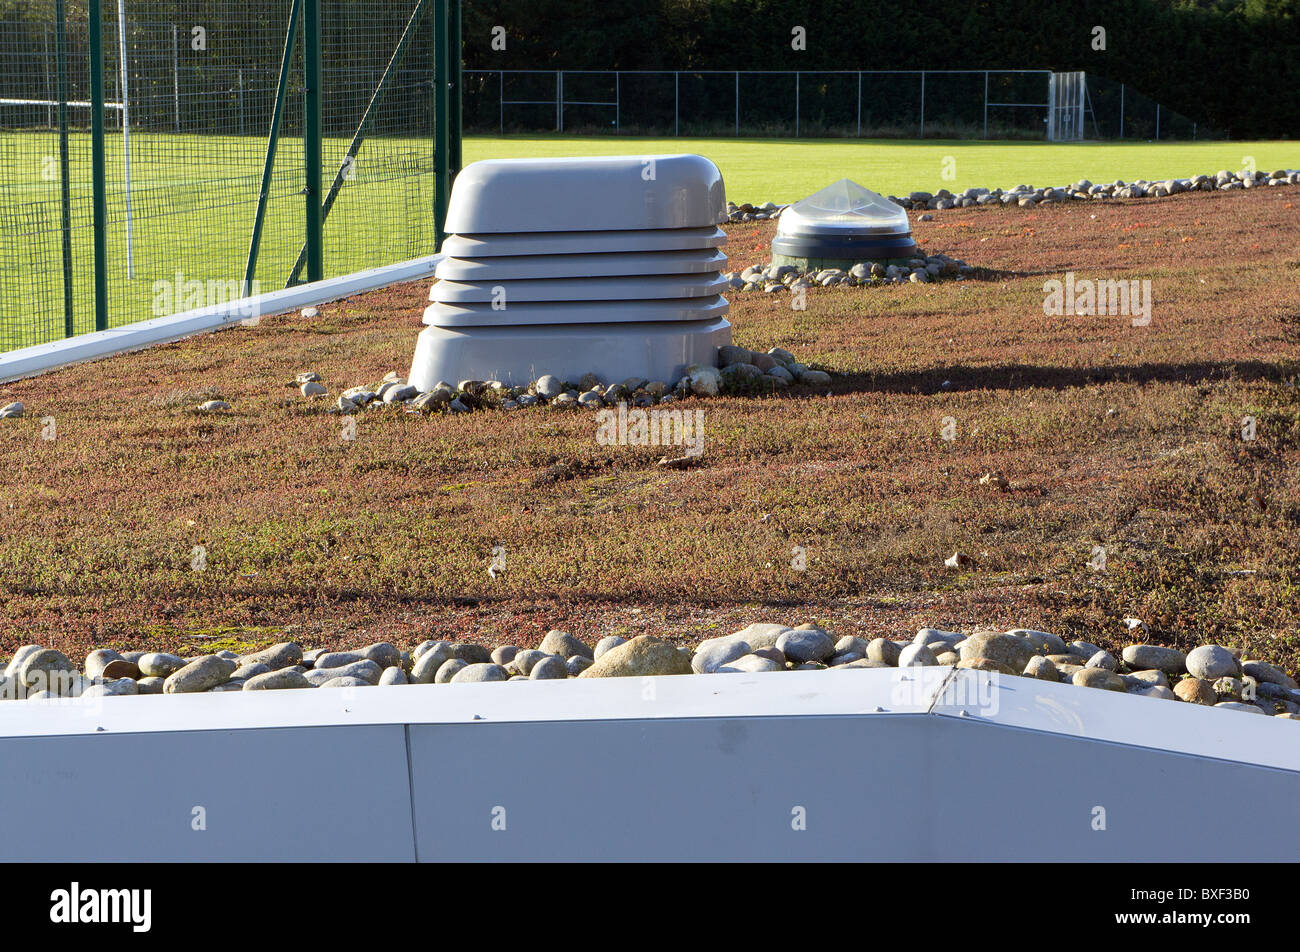 an environmentally friendly growing roof at a school in cornwall, uk - Stock Image